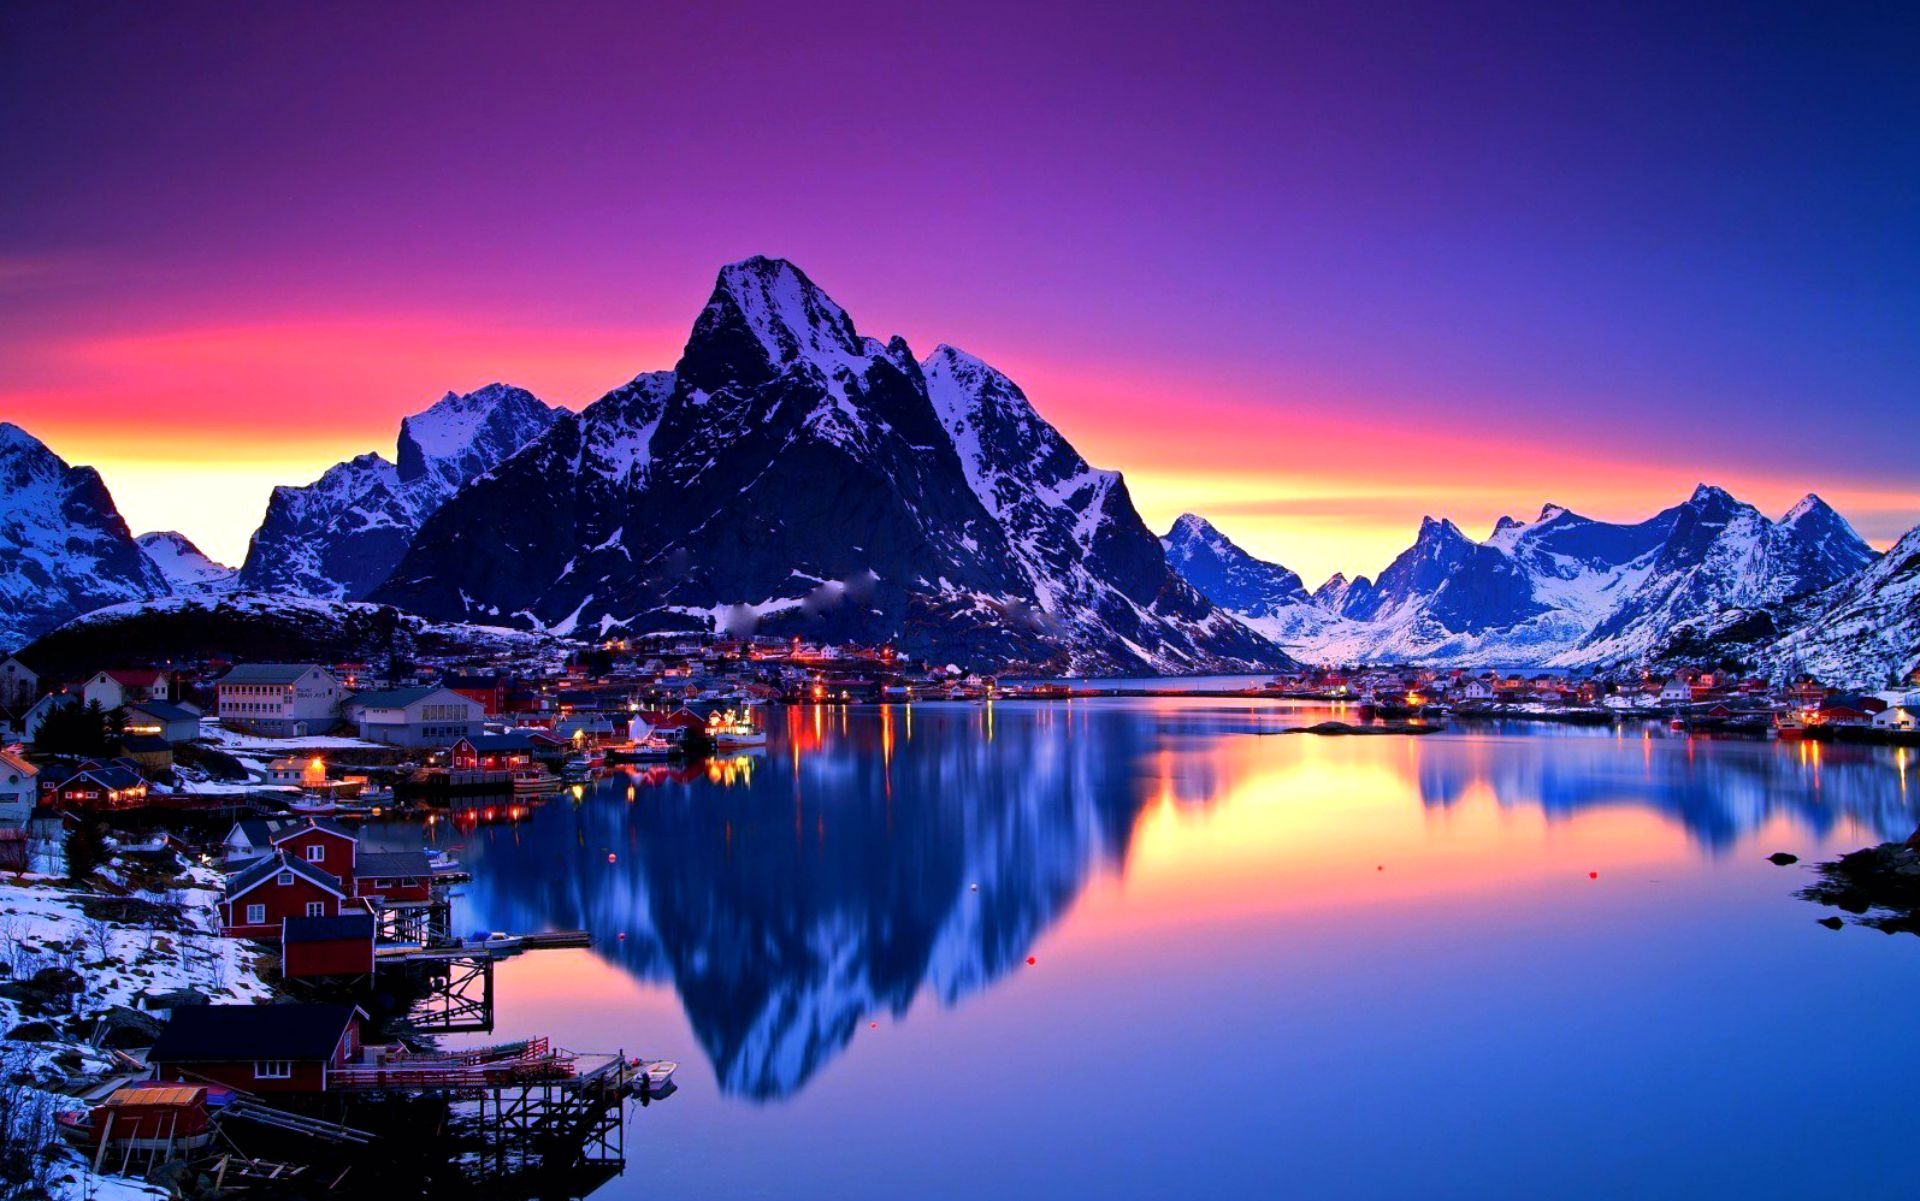 Fantastic 4k Wallpapers for Android - HD Wallpaper 4 US | HD Wallpaper 4 US | Lofoten, Norway ...